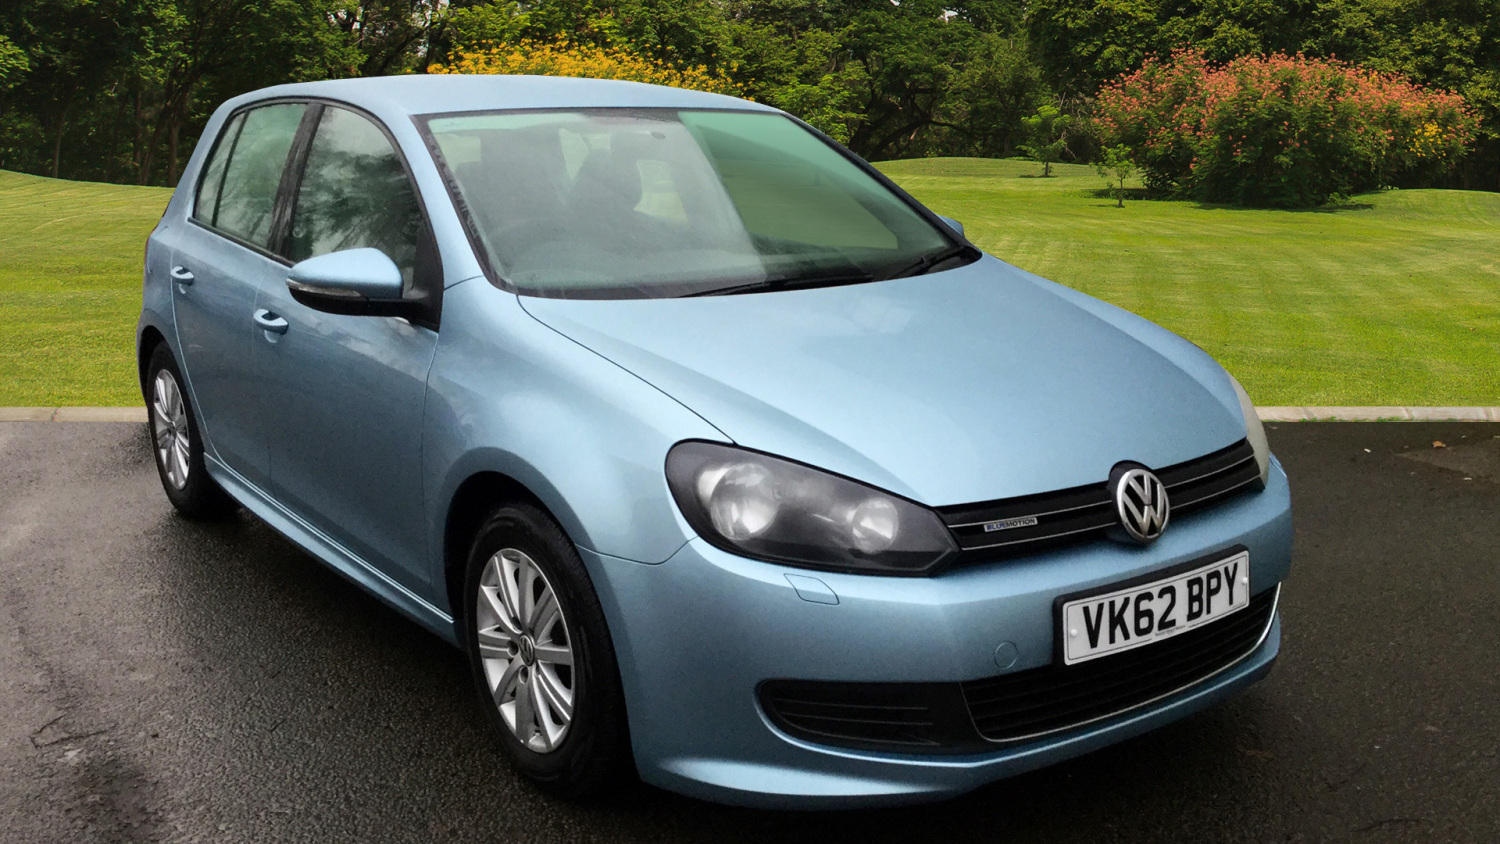 used volkswagen golf 1 6 tdi 105 bluemotion 5dr diesel hatchback for sale in scotland macklin. Black Bedroom Furniture Sets. Home Design Ideas